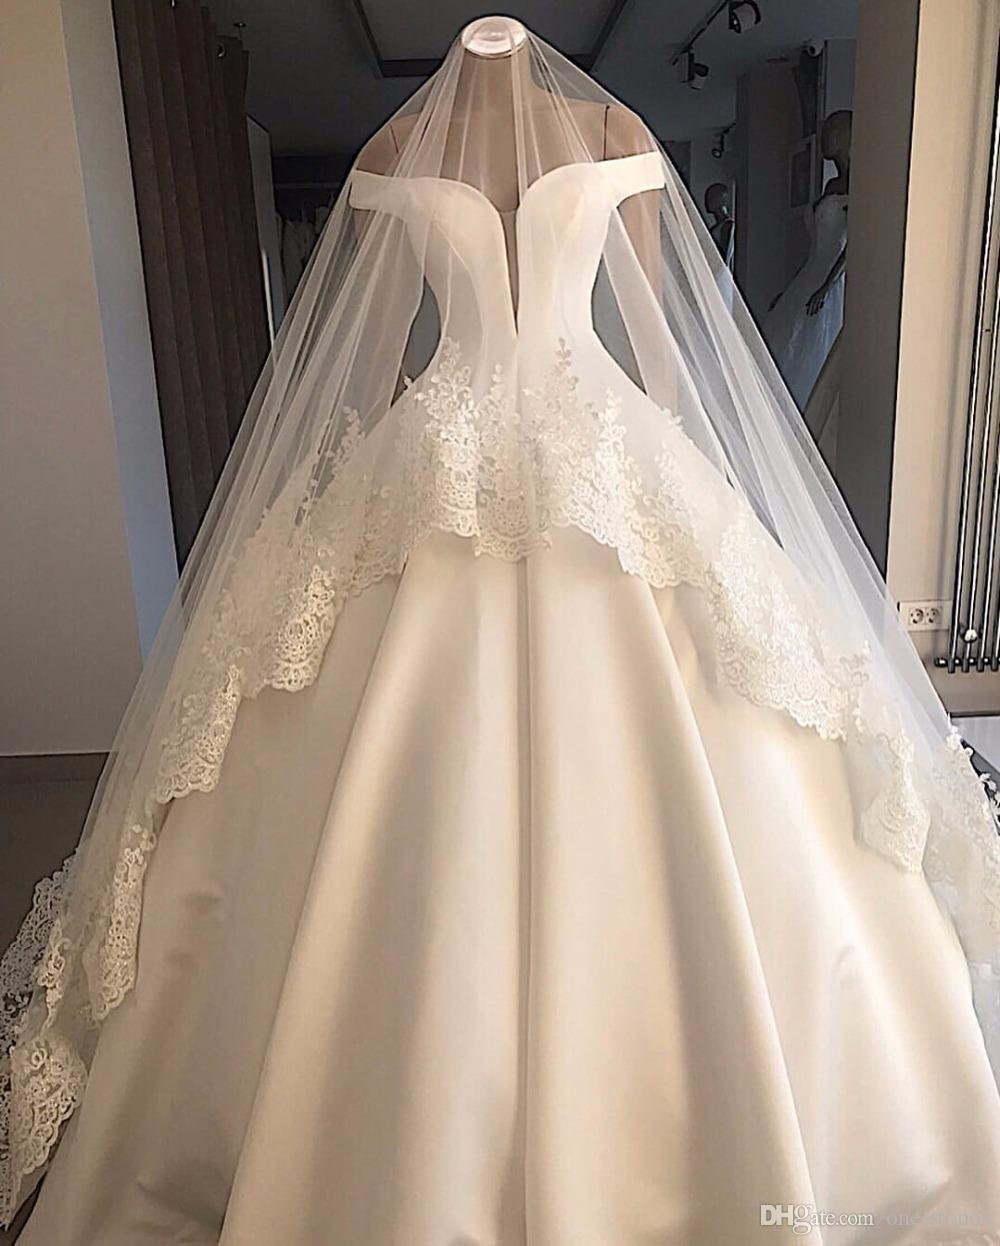 Real Pictures Vintage Off Shoulder Ball Gown Wedding Dress With Veils Sparkly Luxury Saudi Dubai Arabic Plus Size Bridal Gown